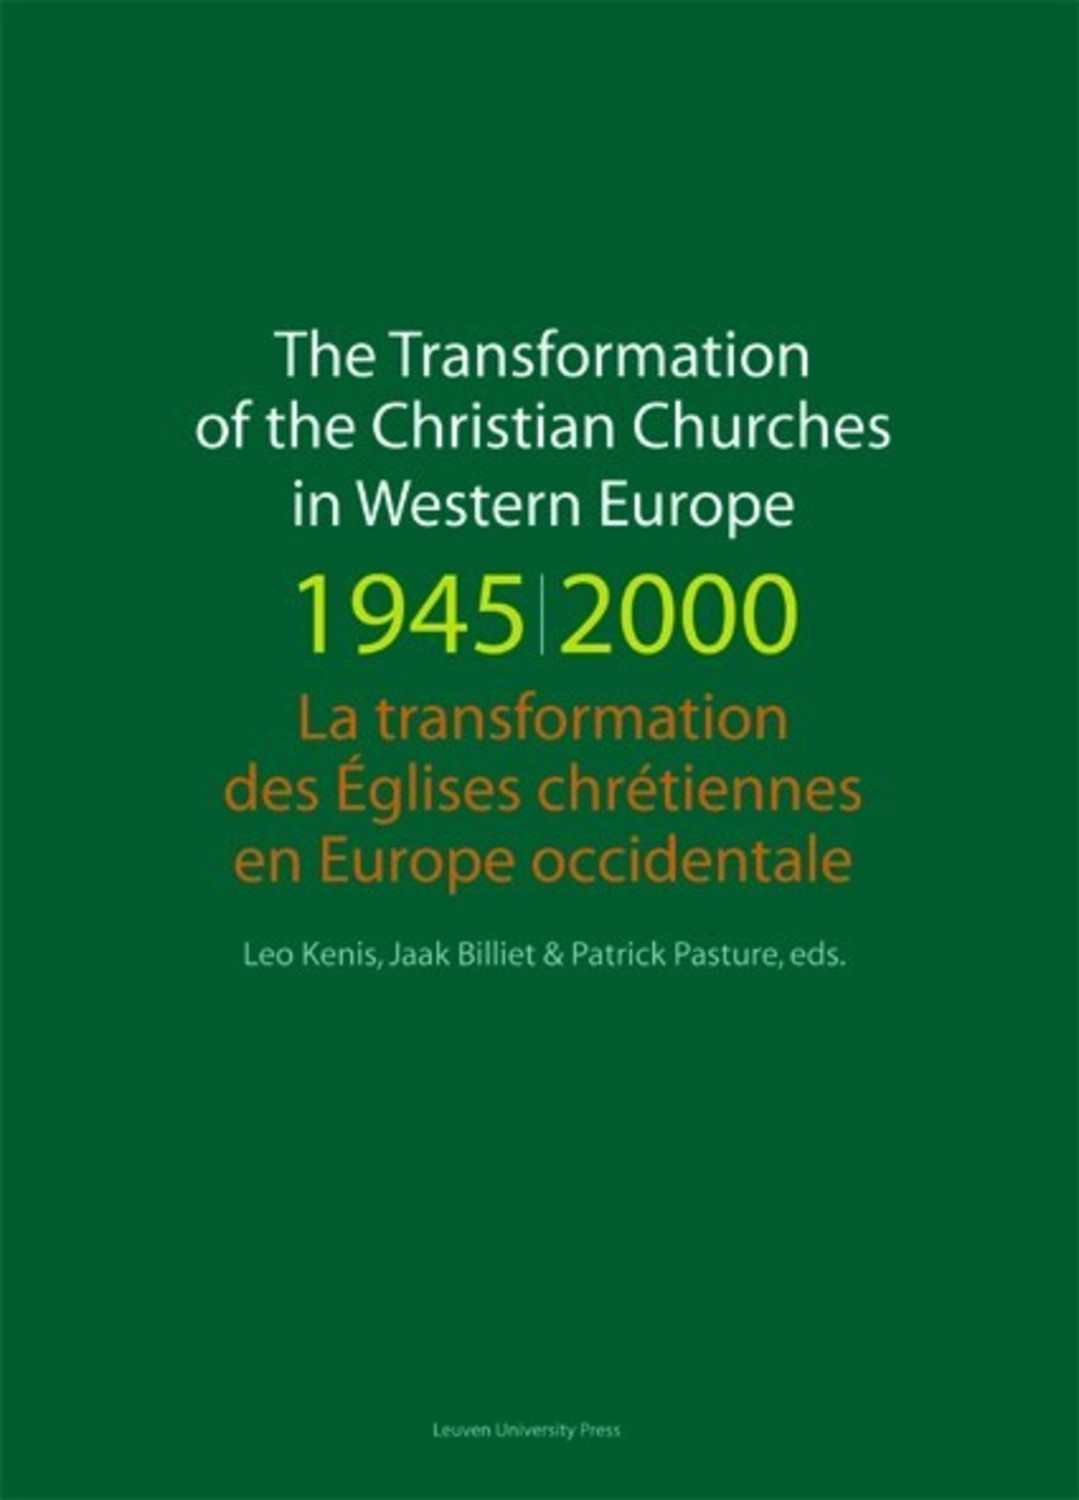 The Transformation of the Christian Churches in Western Europe (1945-2000) / La transformation des églises chrétiennes en Europe occidentale